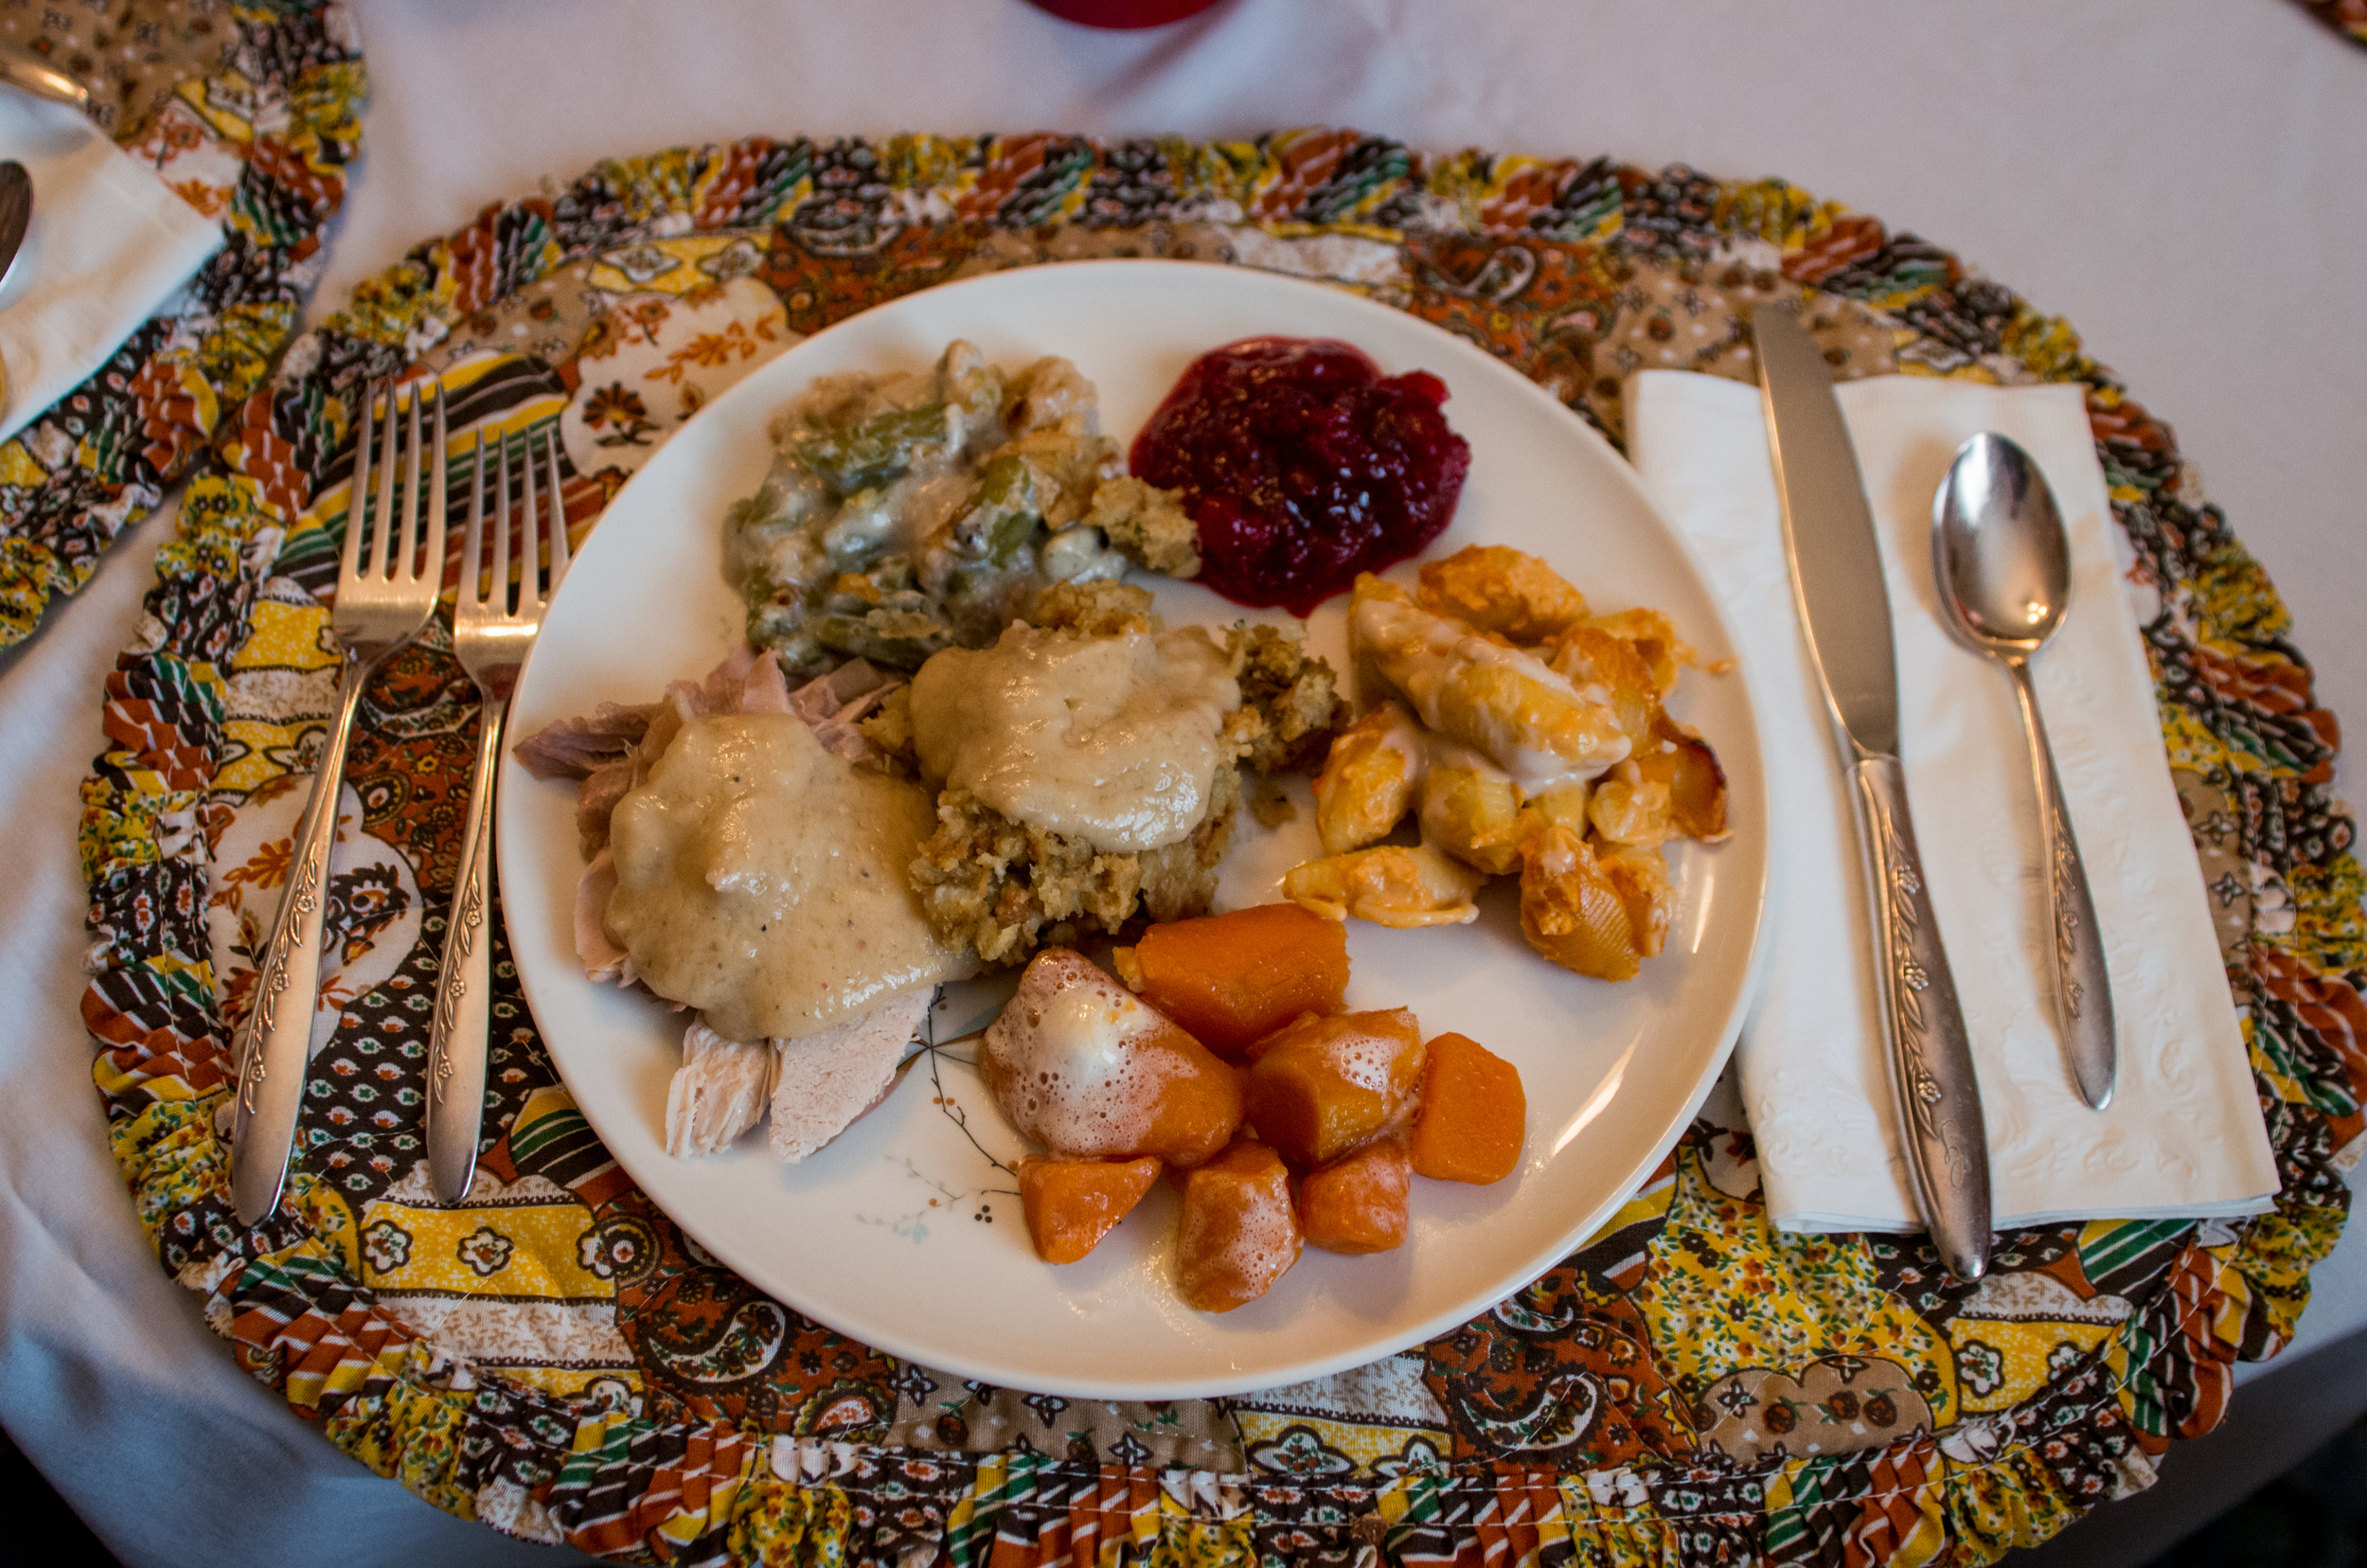 20141127-Thanksgiving-PMG_6492.jpg